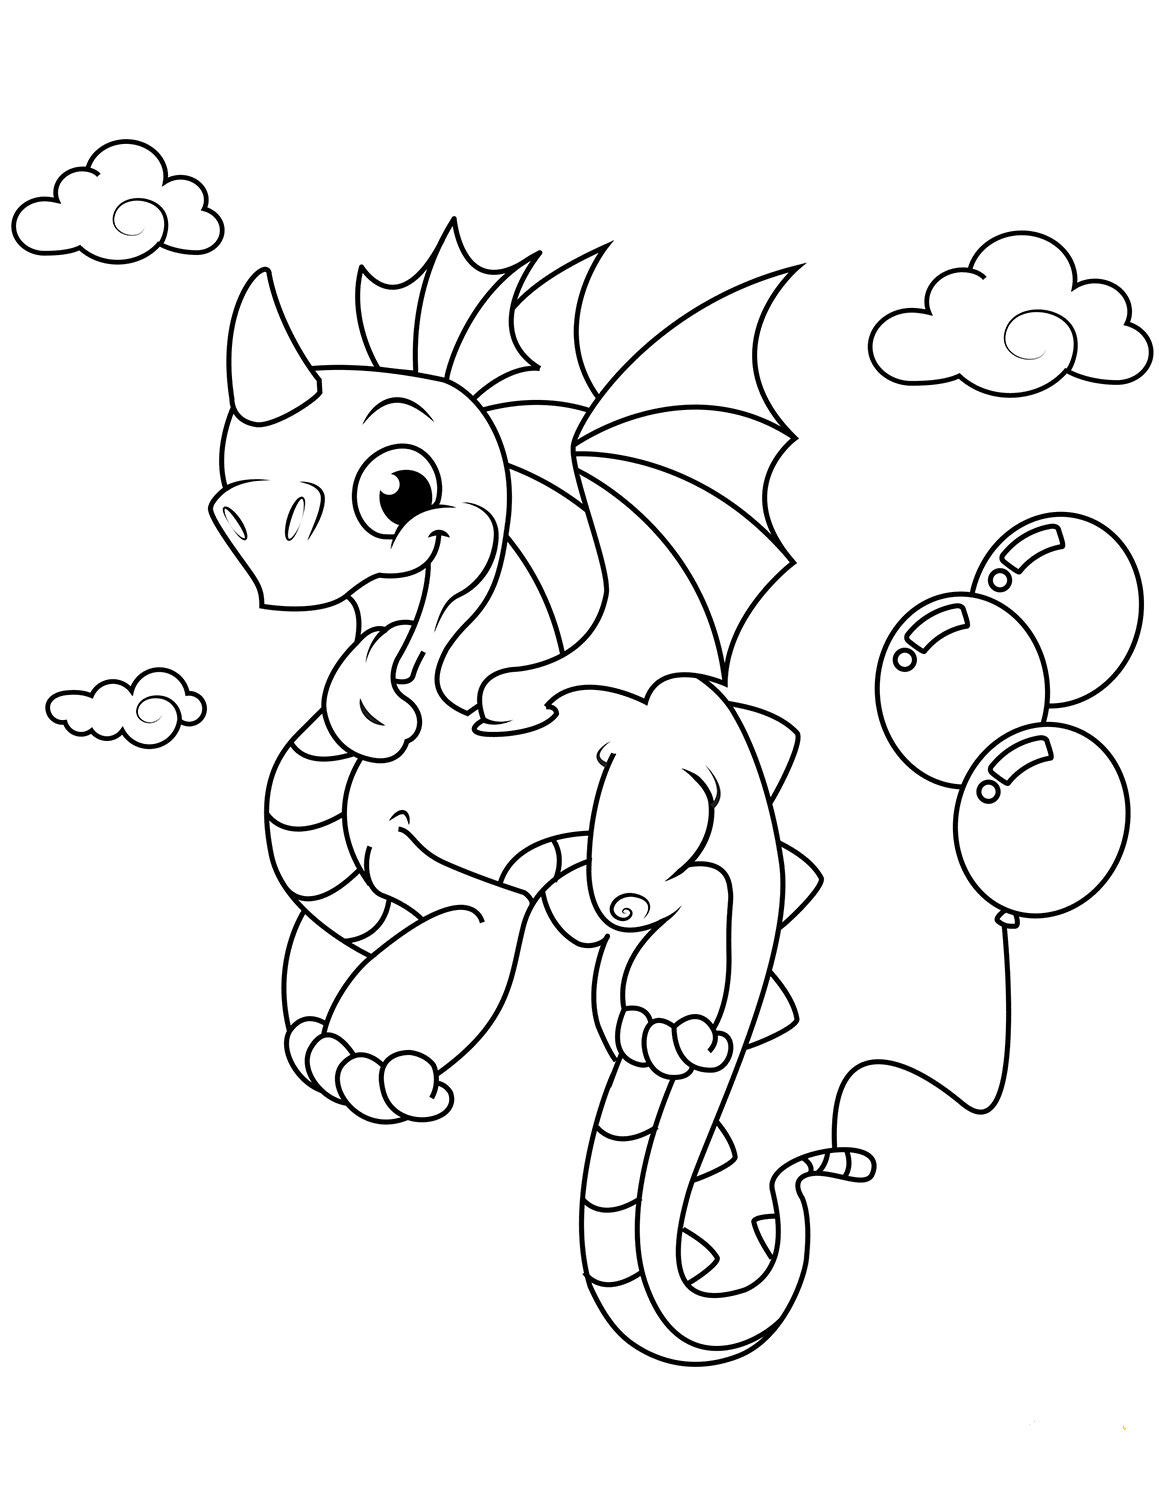 Dragon Tracing Pictures 35 Free Printable Dragon Coloring Pages